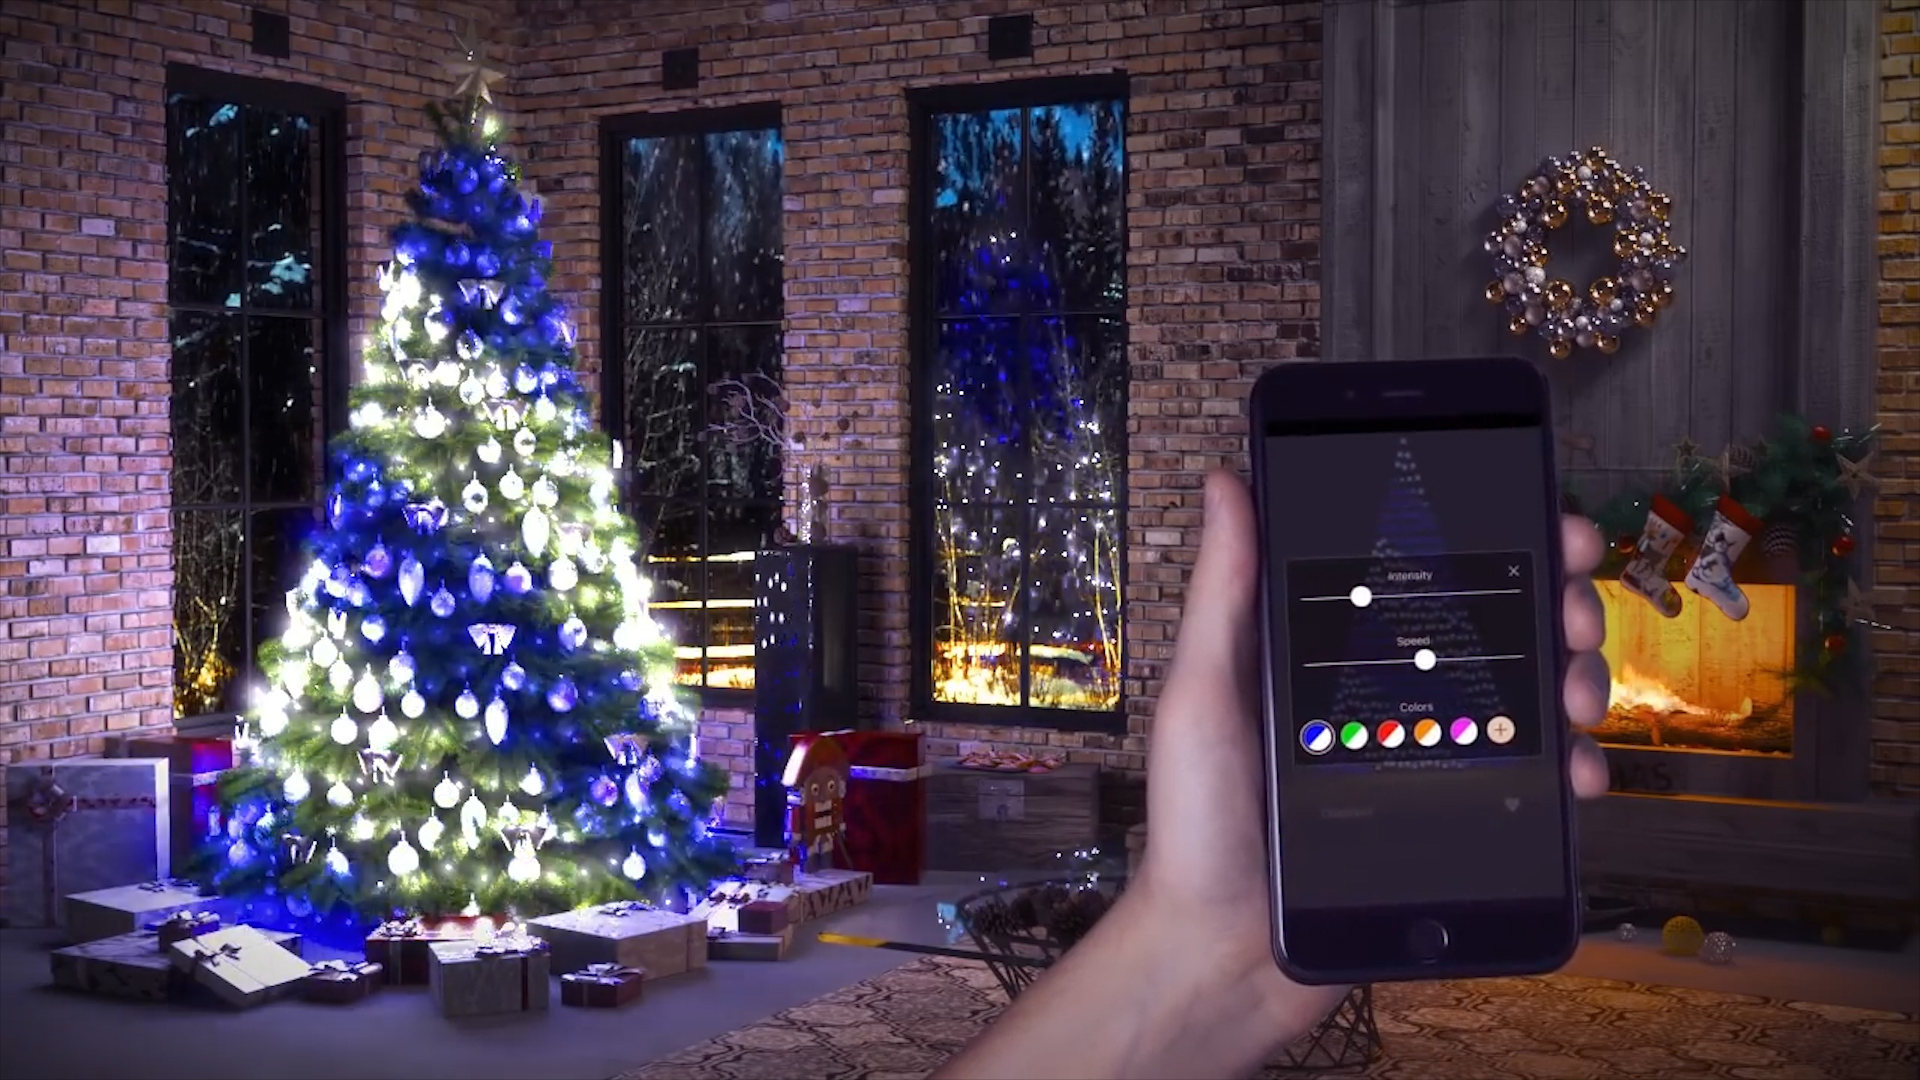 Christmas Light Remote Controls.You Can Now Control Your Christmas Tree Lights With Your Phone